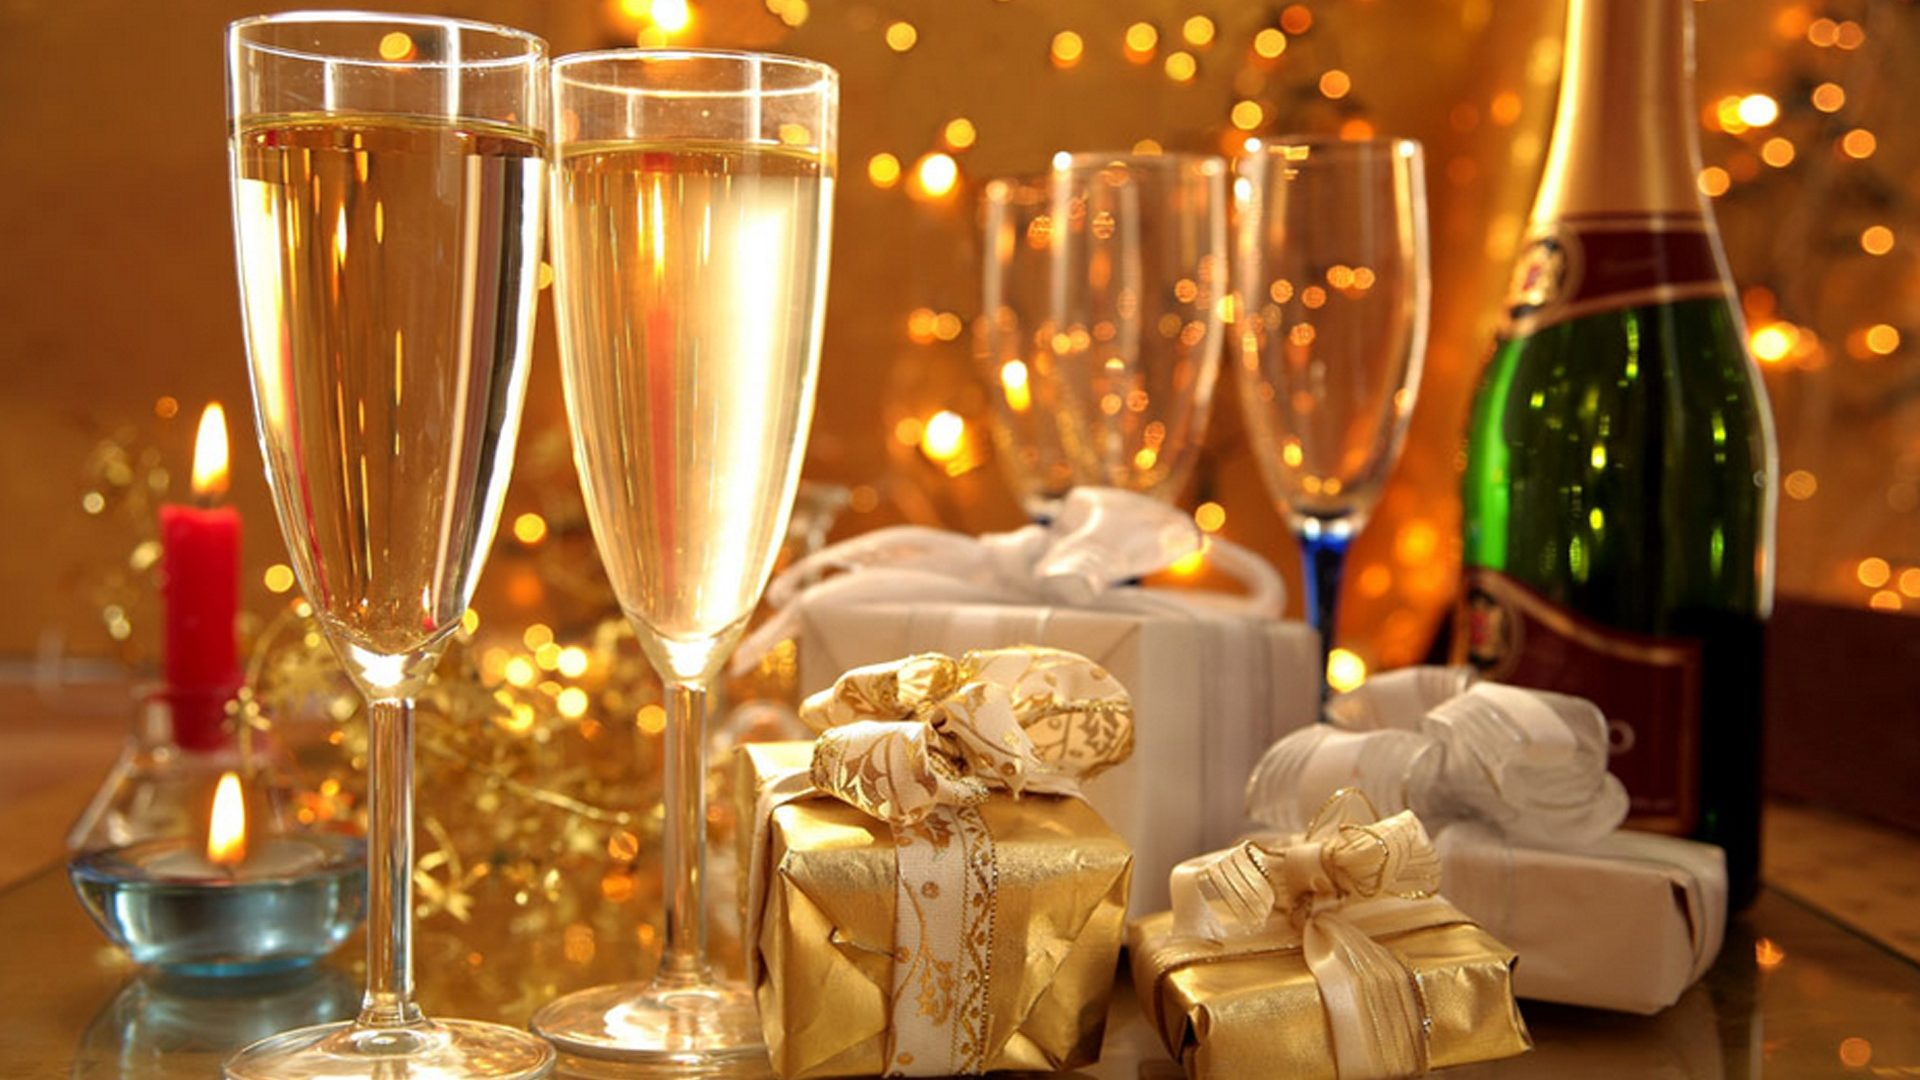 Celebrate-a-New-Year-Holiday-Gifts-And-Wine-Glasses-Desktop-backgrounds-1920x1200-1920x1080